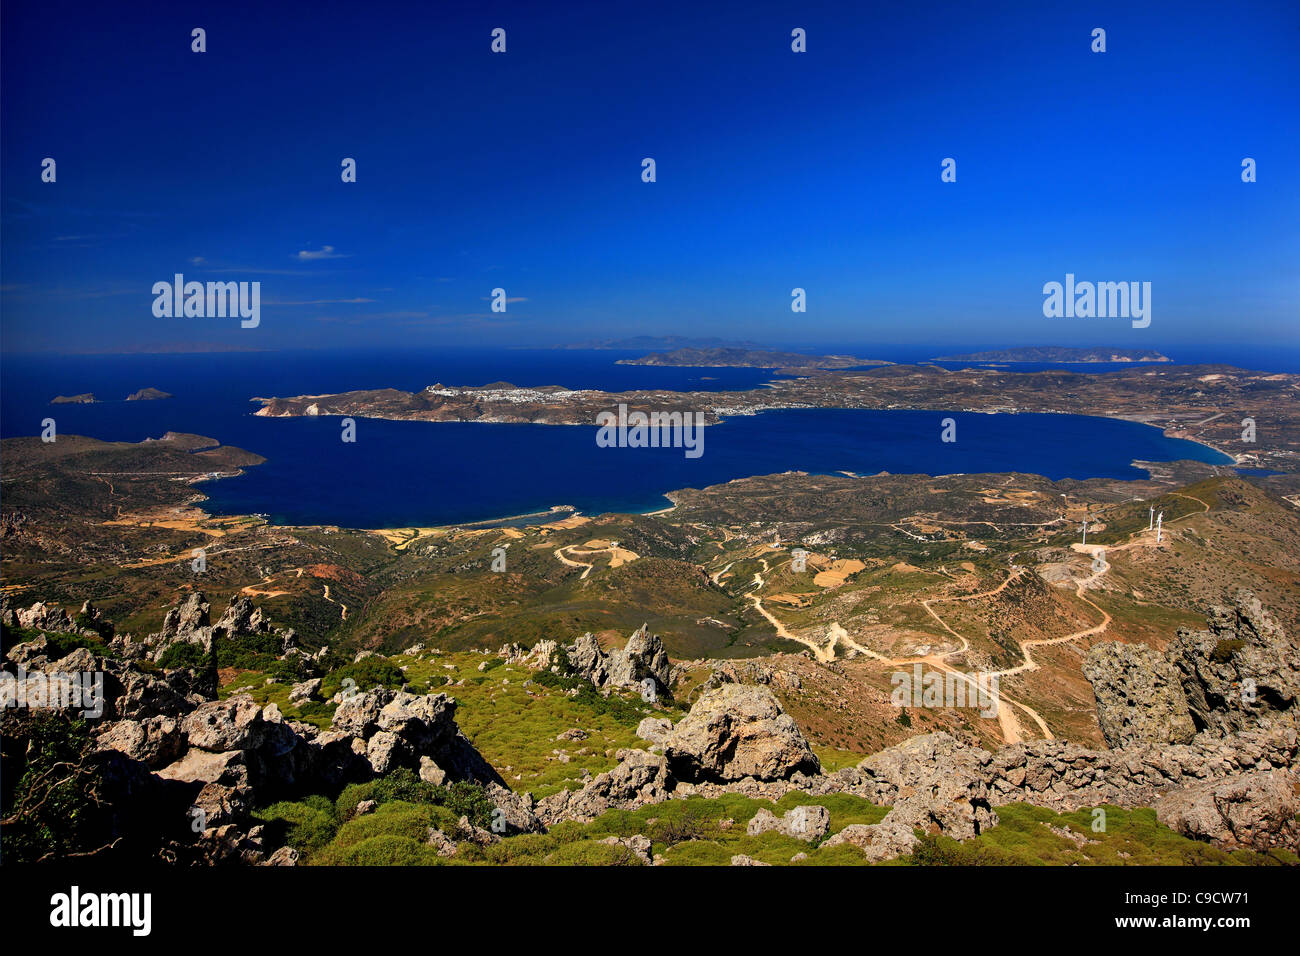 Panoramic view of the Gulf of Milos, one of the largest natural harbors in the Mediterranean. Cyclades, Greece - Stock Image